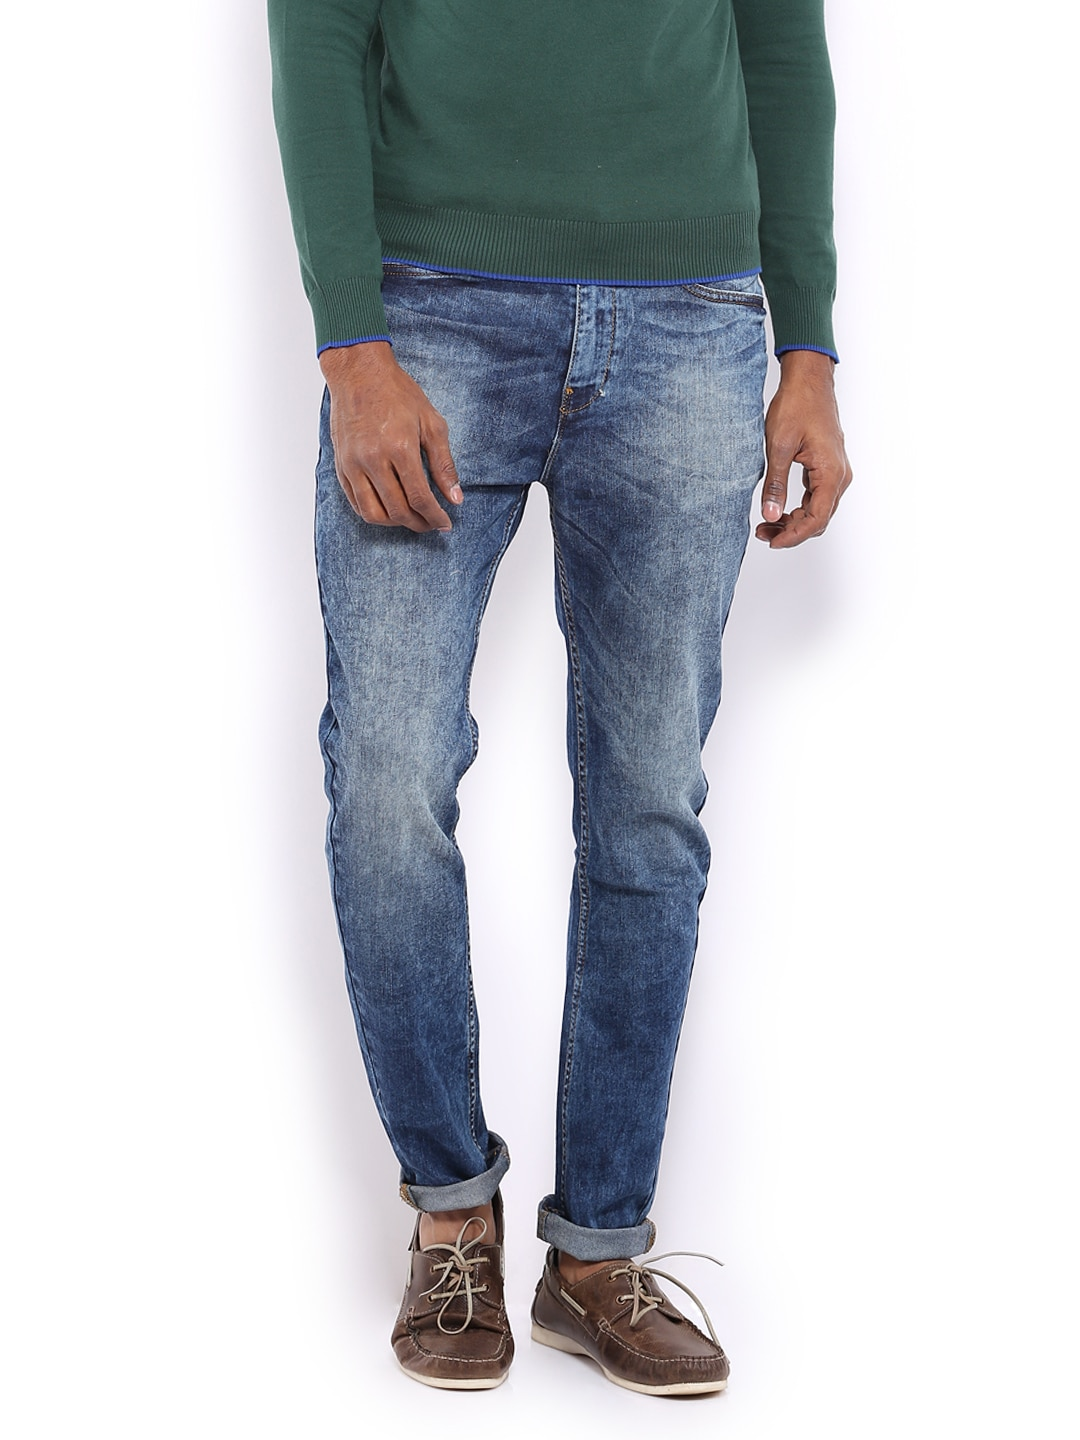 Buy United Colors Of Benetton Men Blue Carrot Fit Jeans - 363 - Apparel for Men - 386958